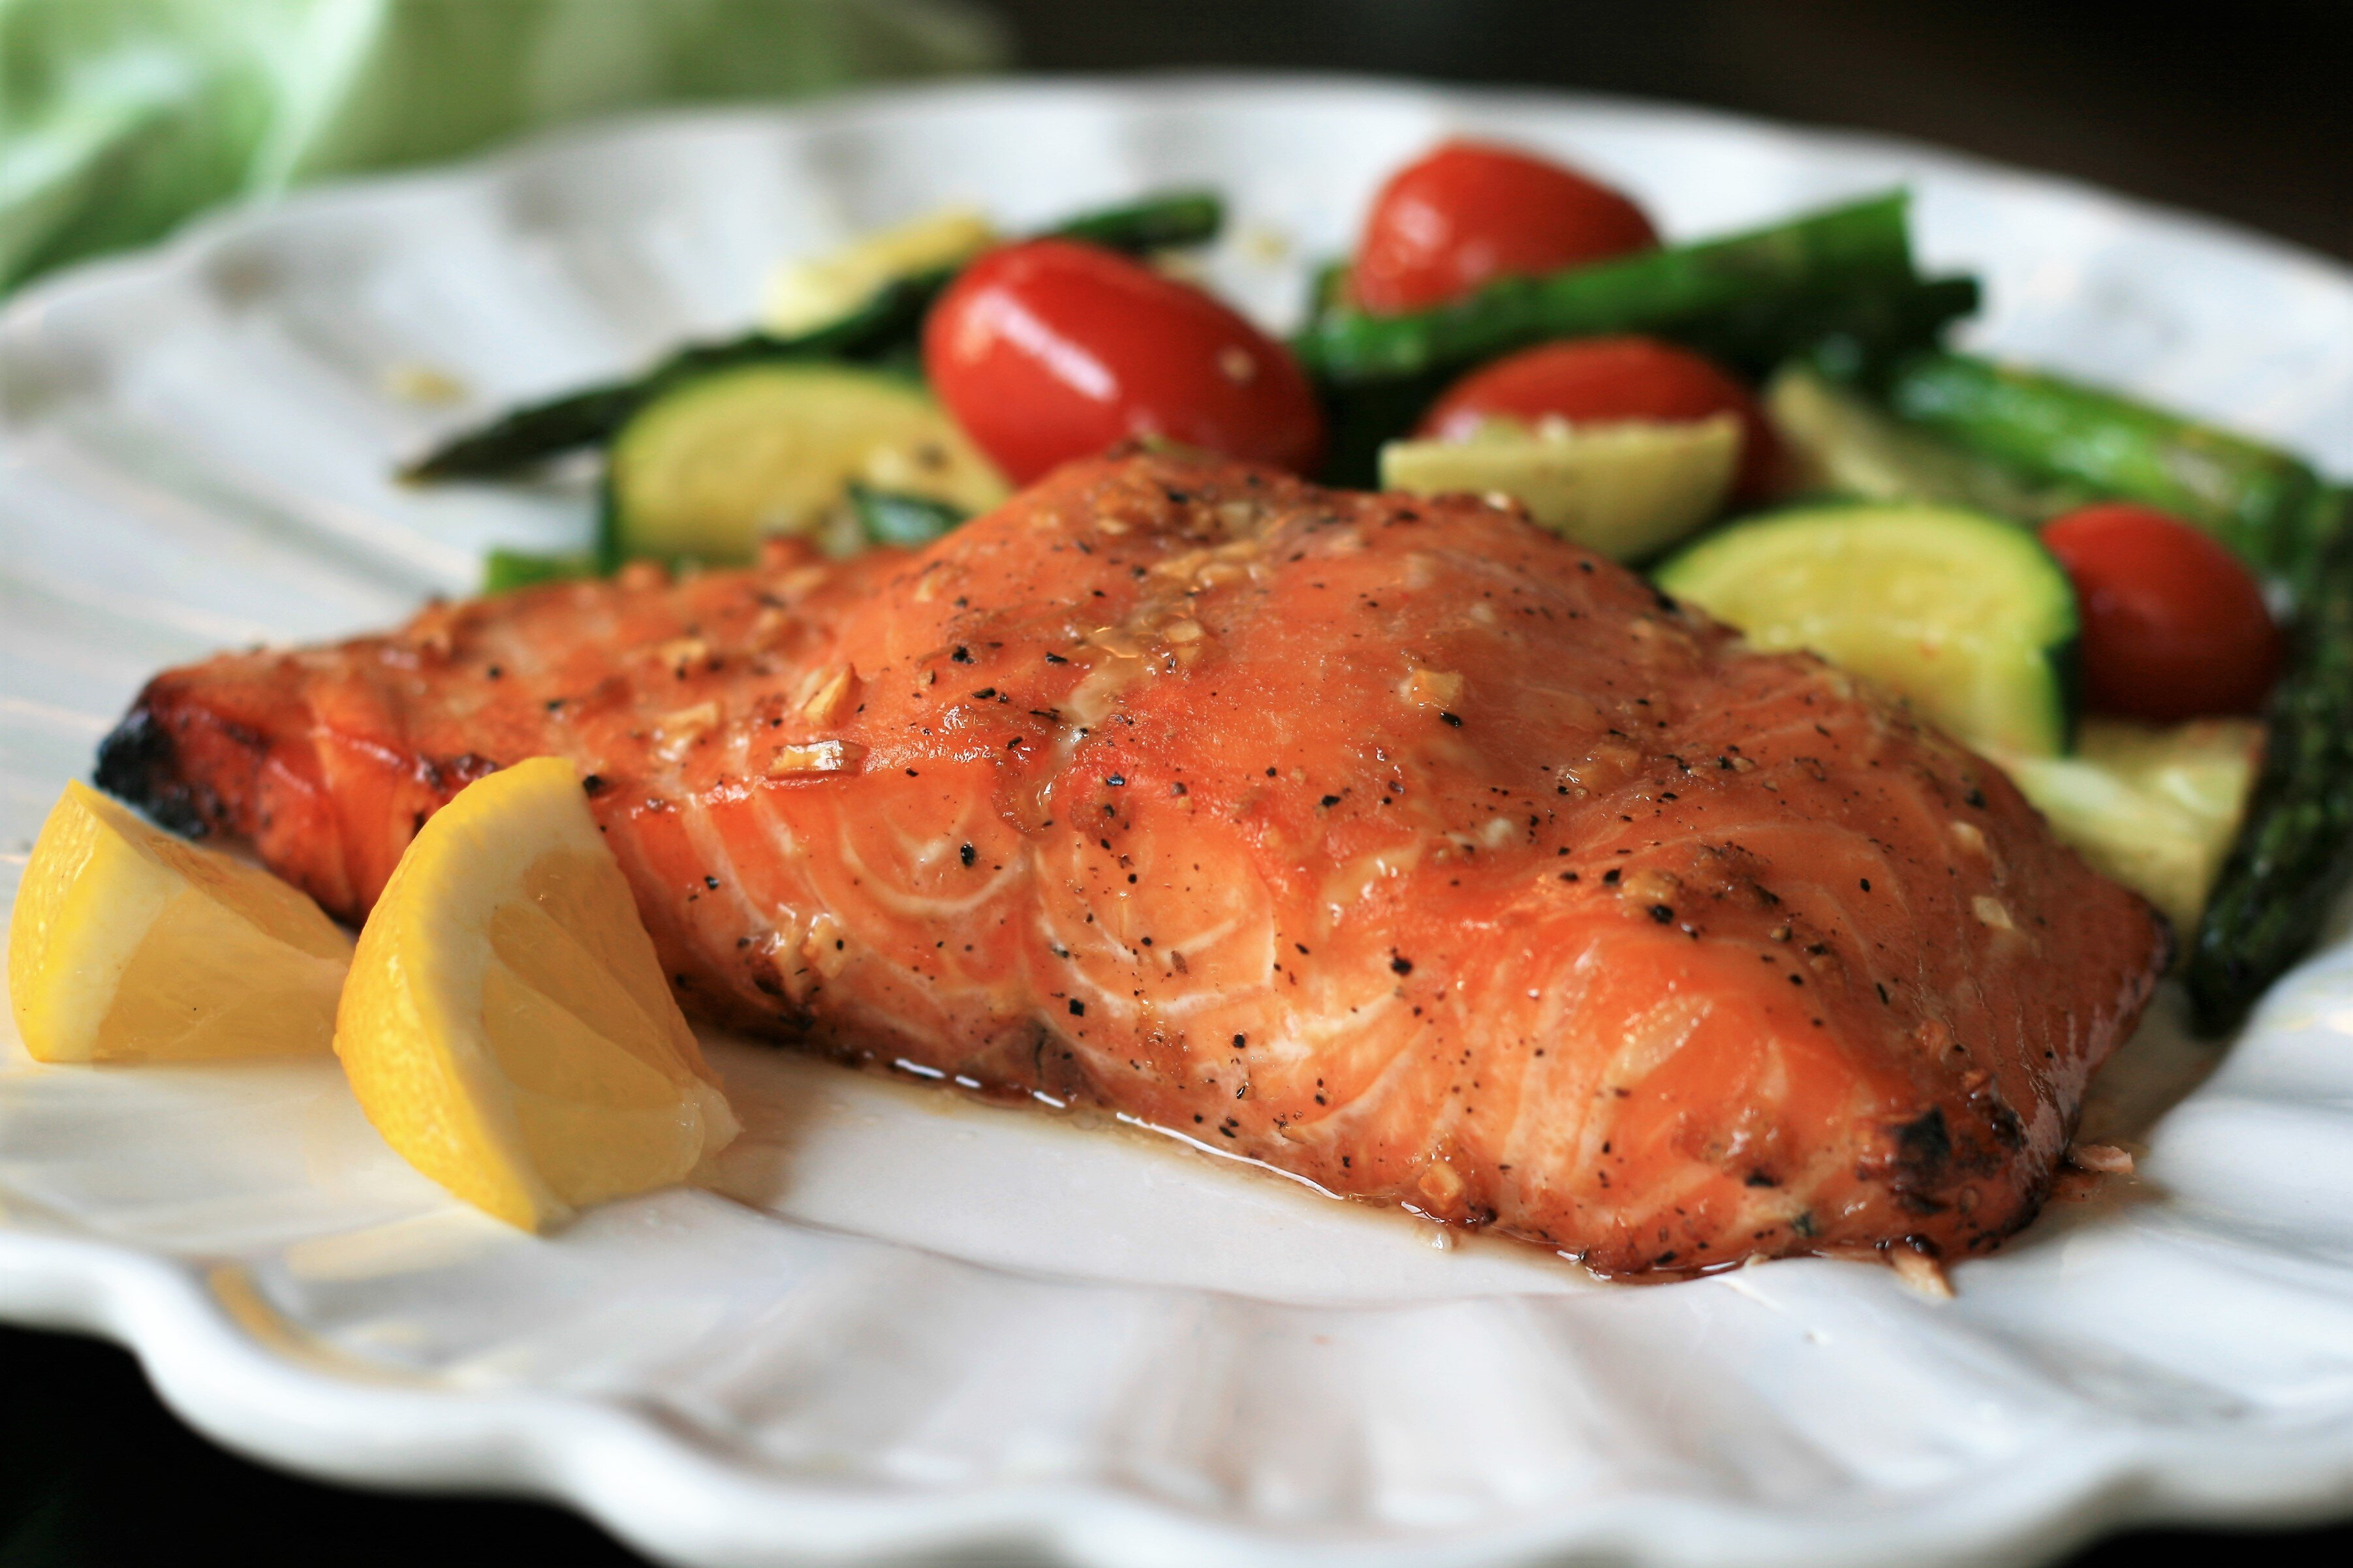 Grilled Salmon with Maple Syrup and Soy Sauce